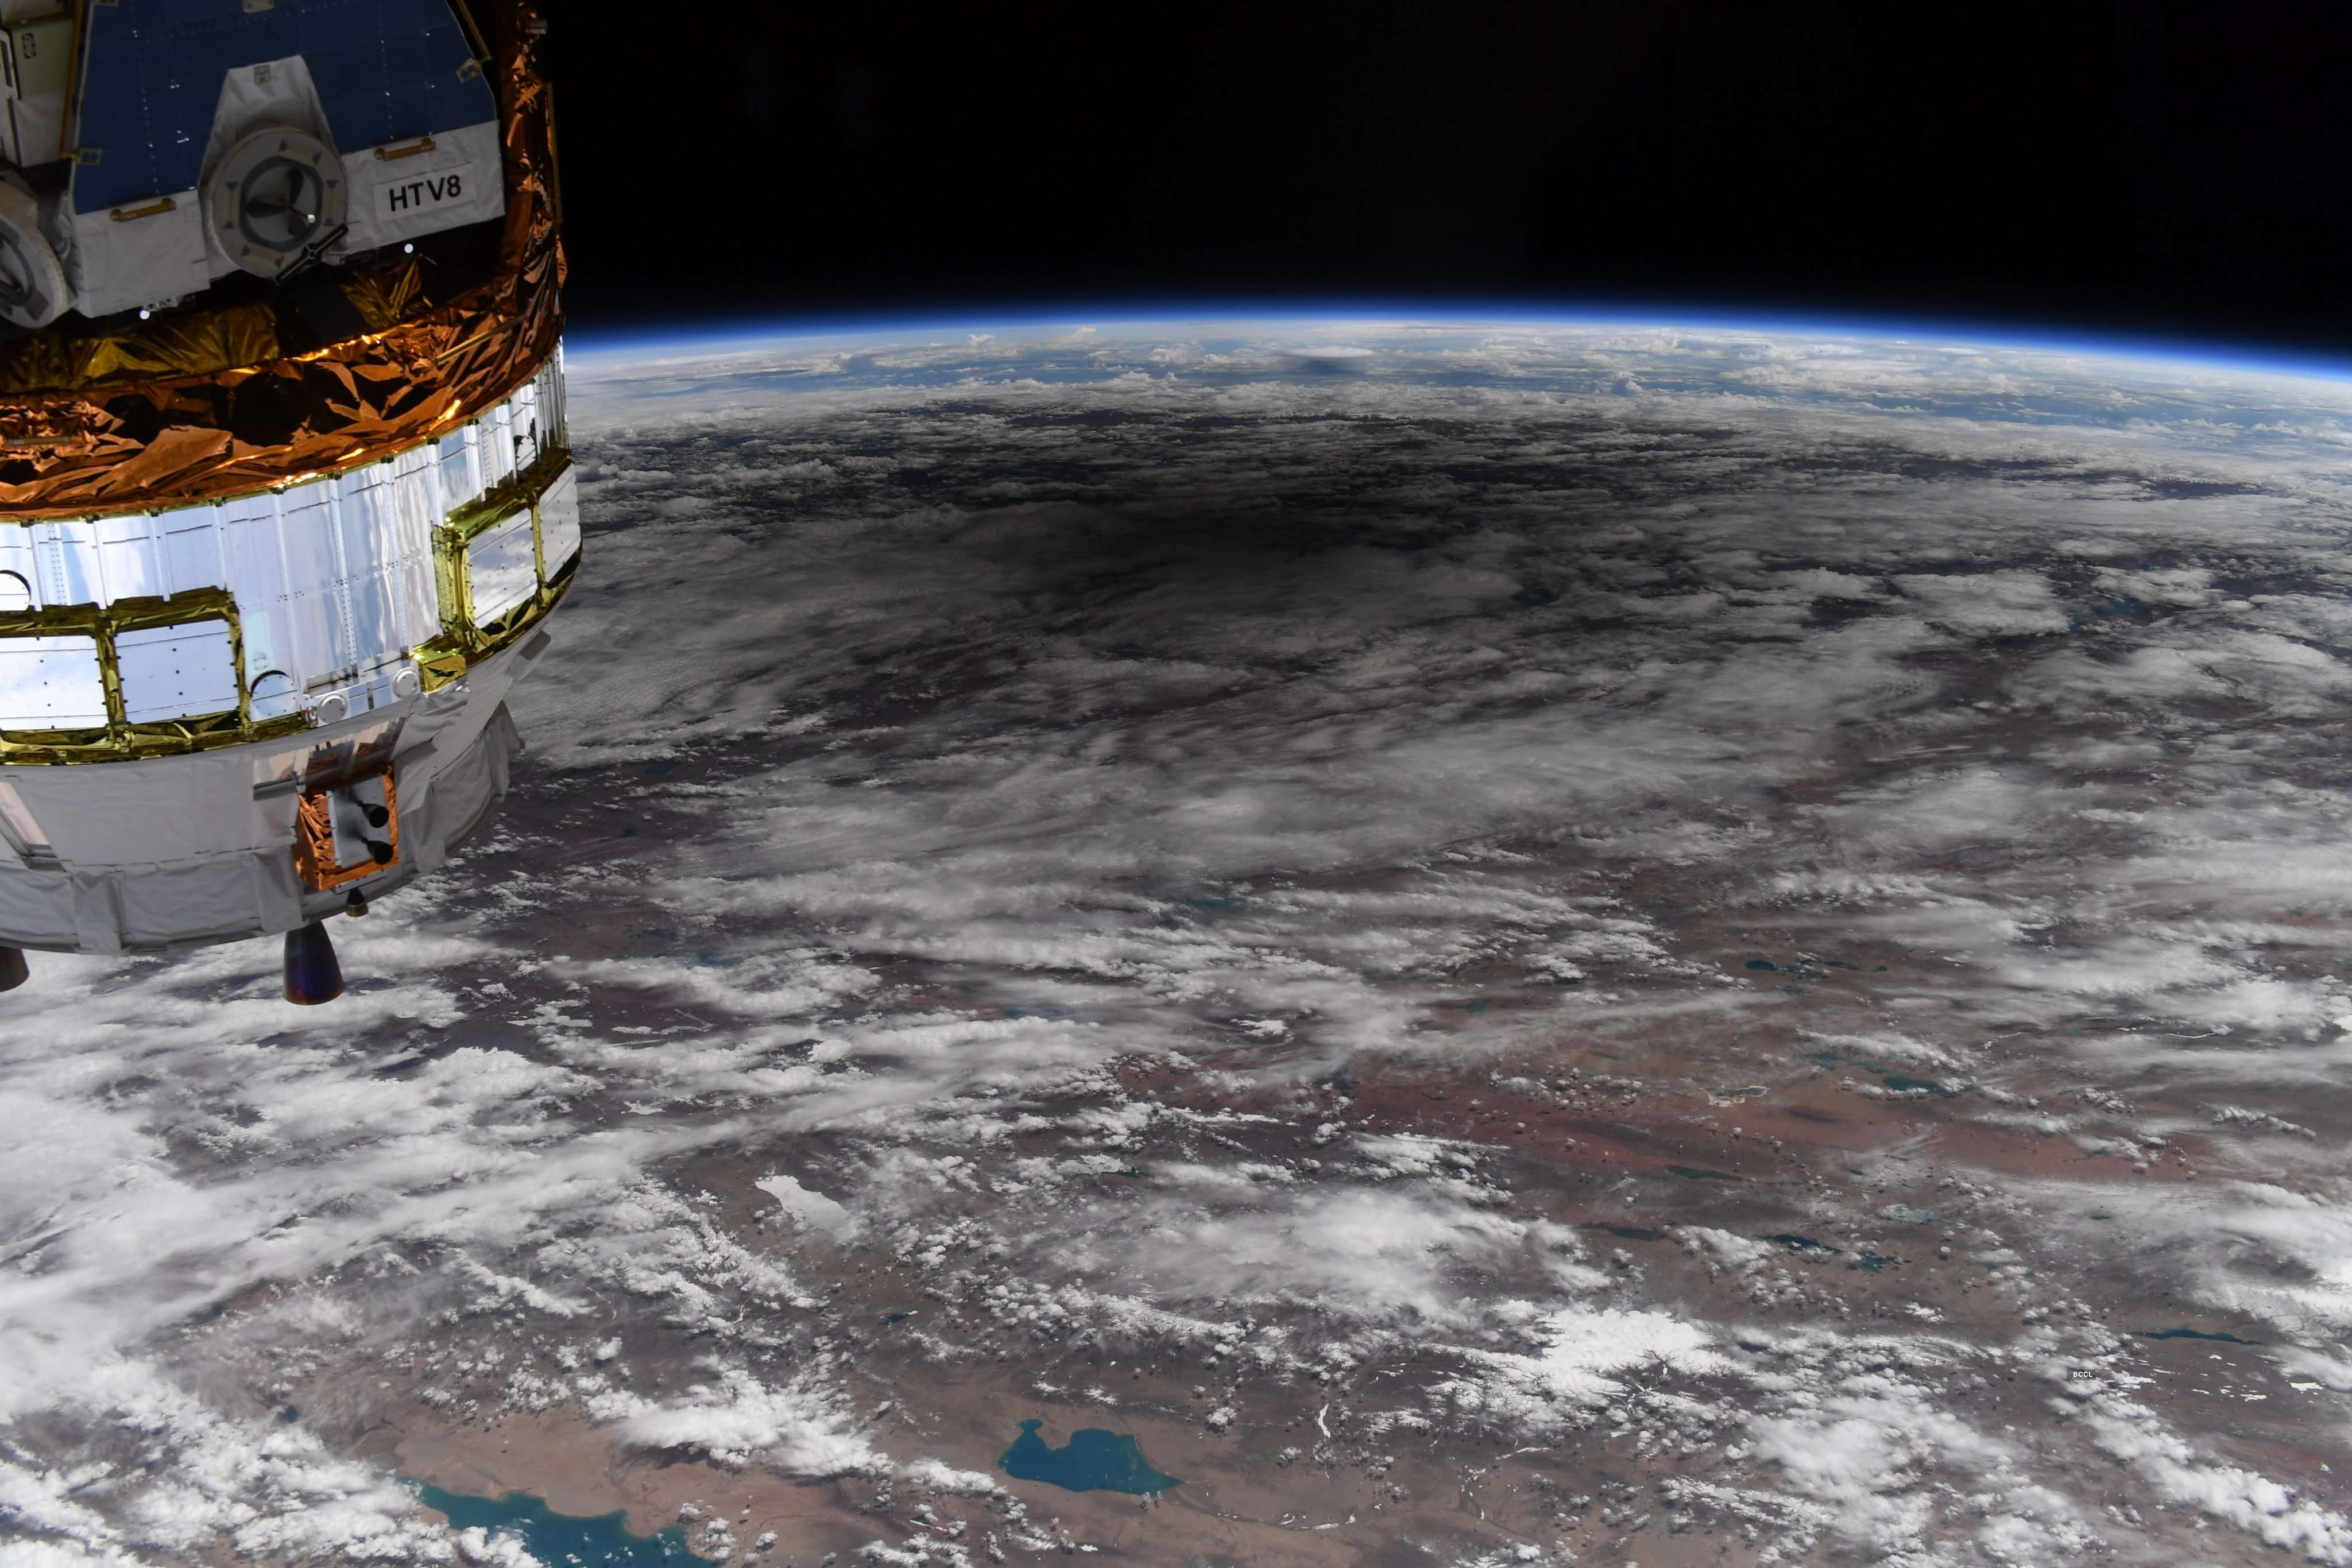 NASA astronaut shares spectacular Solar Eclipse images from space